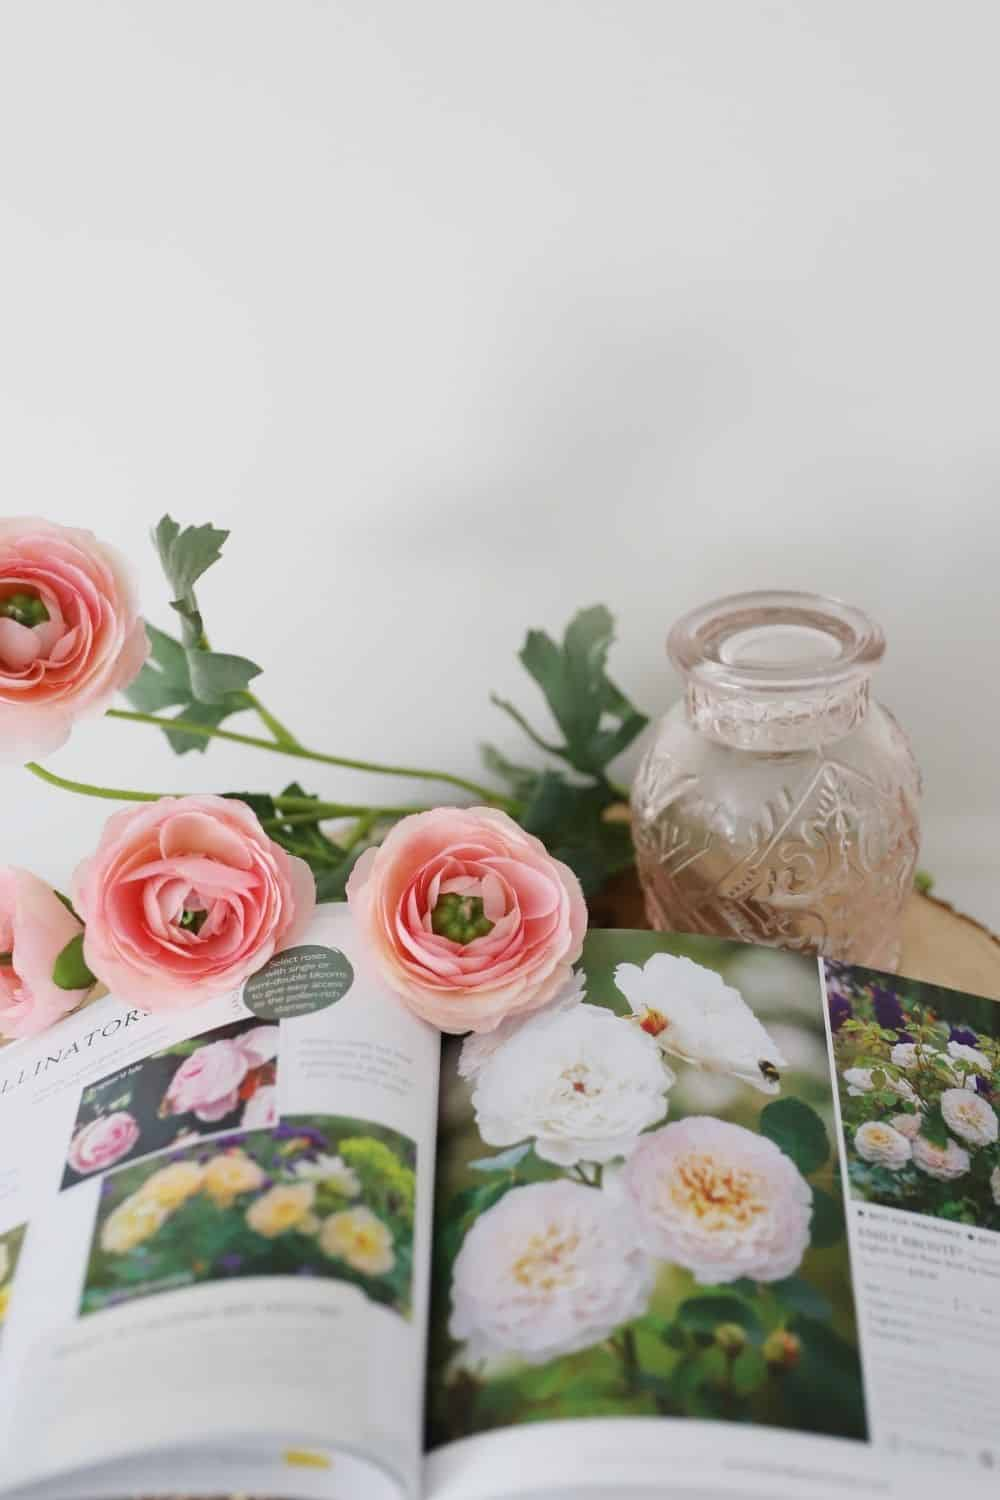 Tips on How to Plant Bare Root Roses